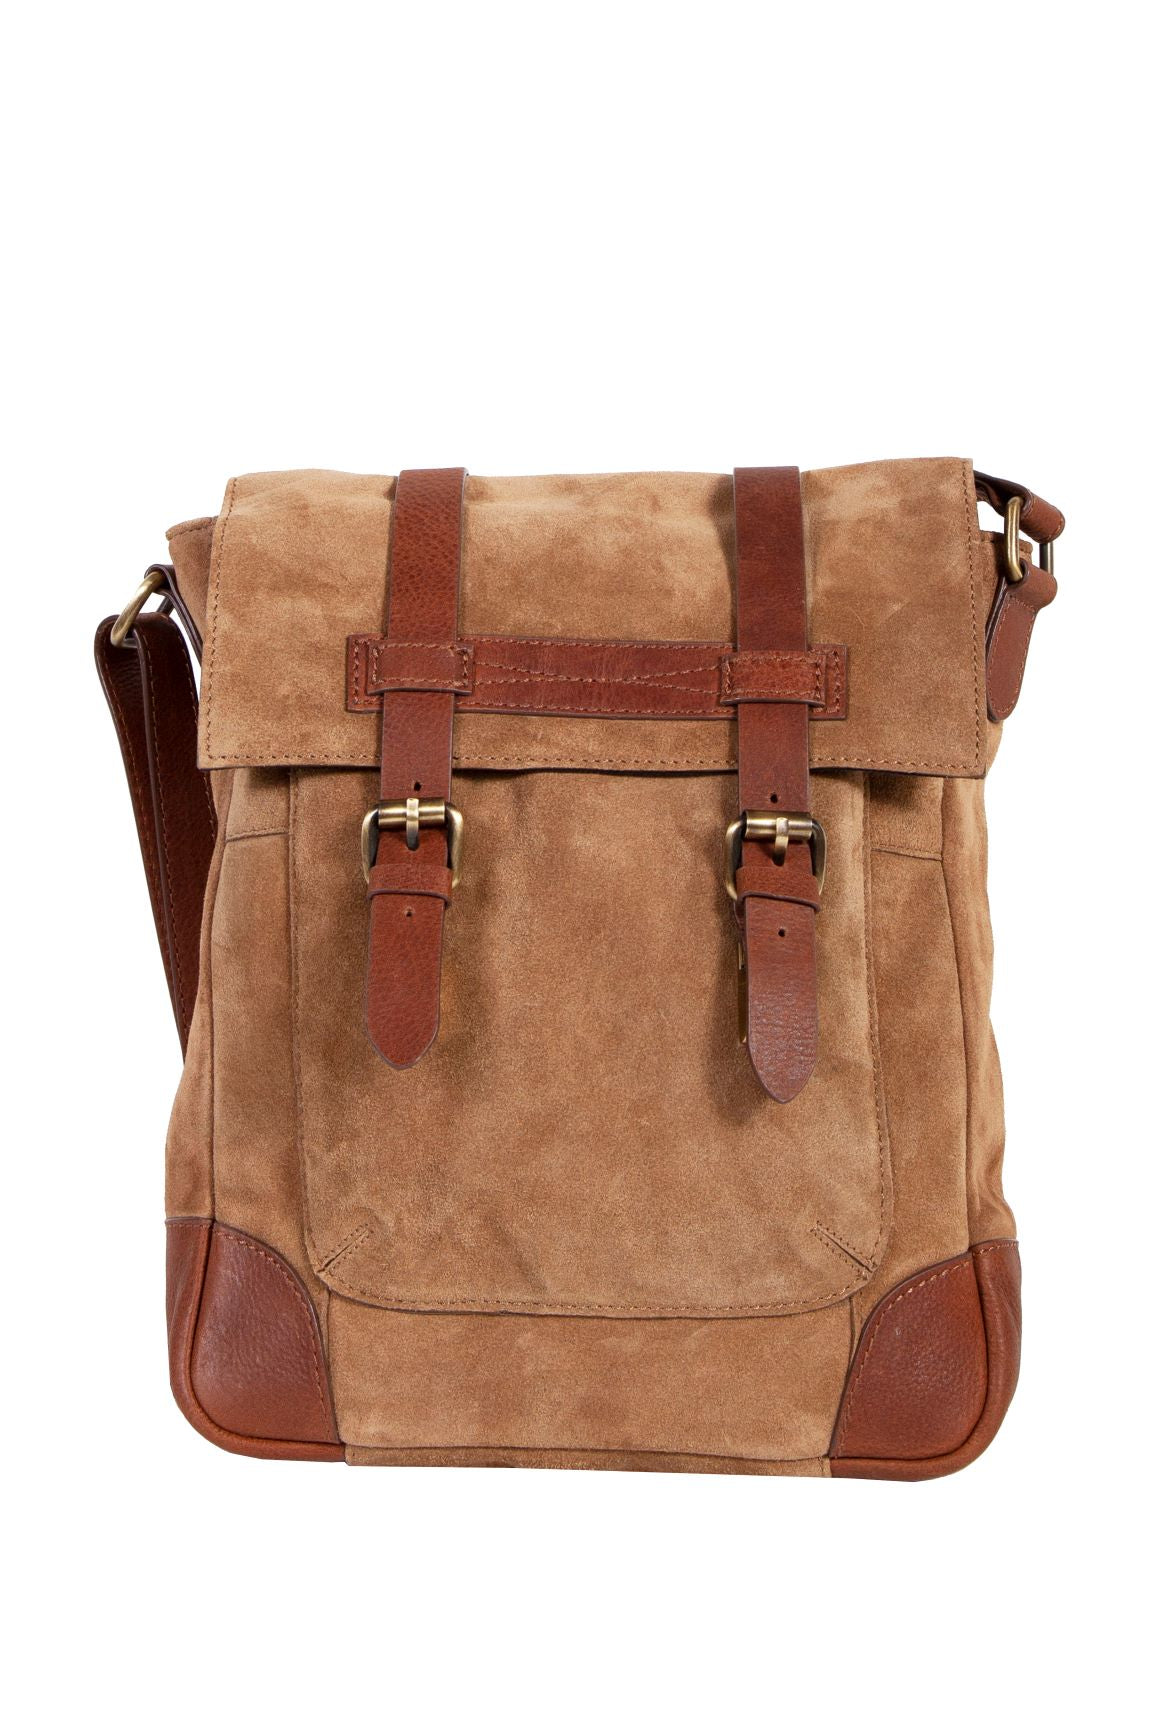 Scully Retro Nubuck Leather Cargo Messenger Tablet Bag